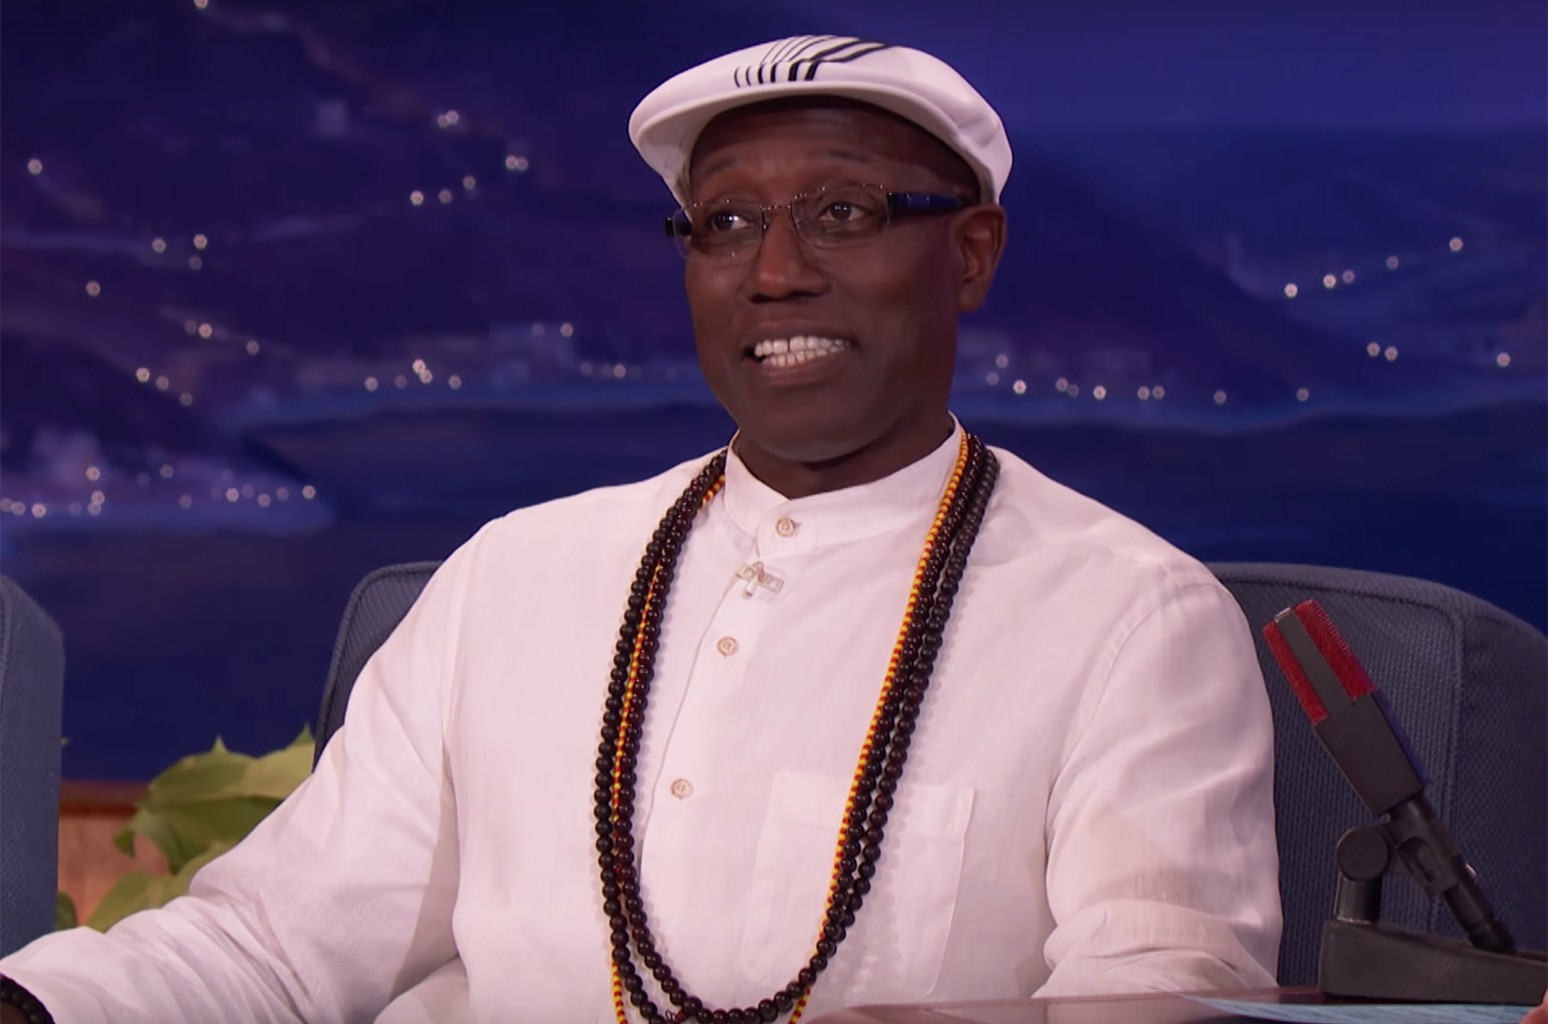 Wesley Snipes on Conan